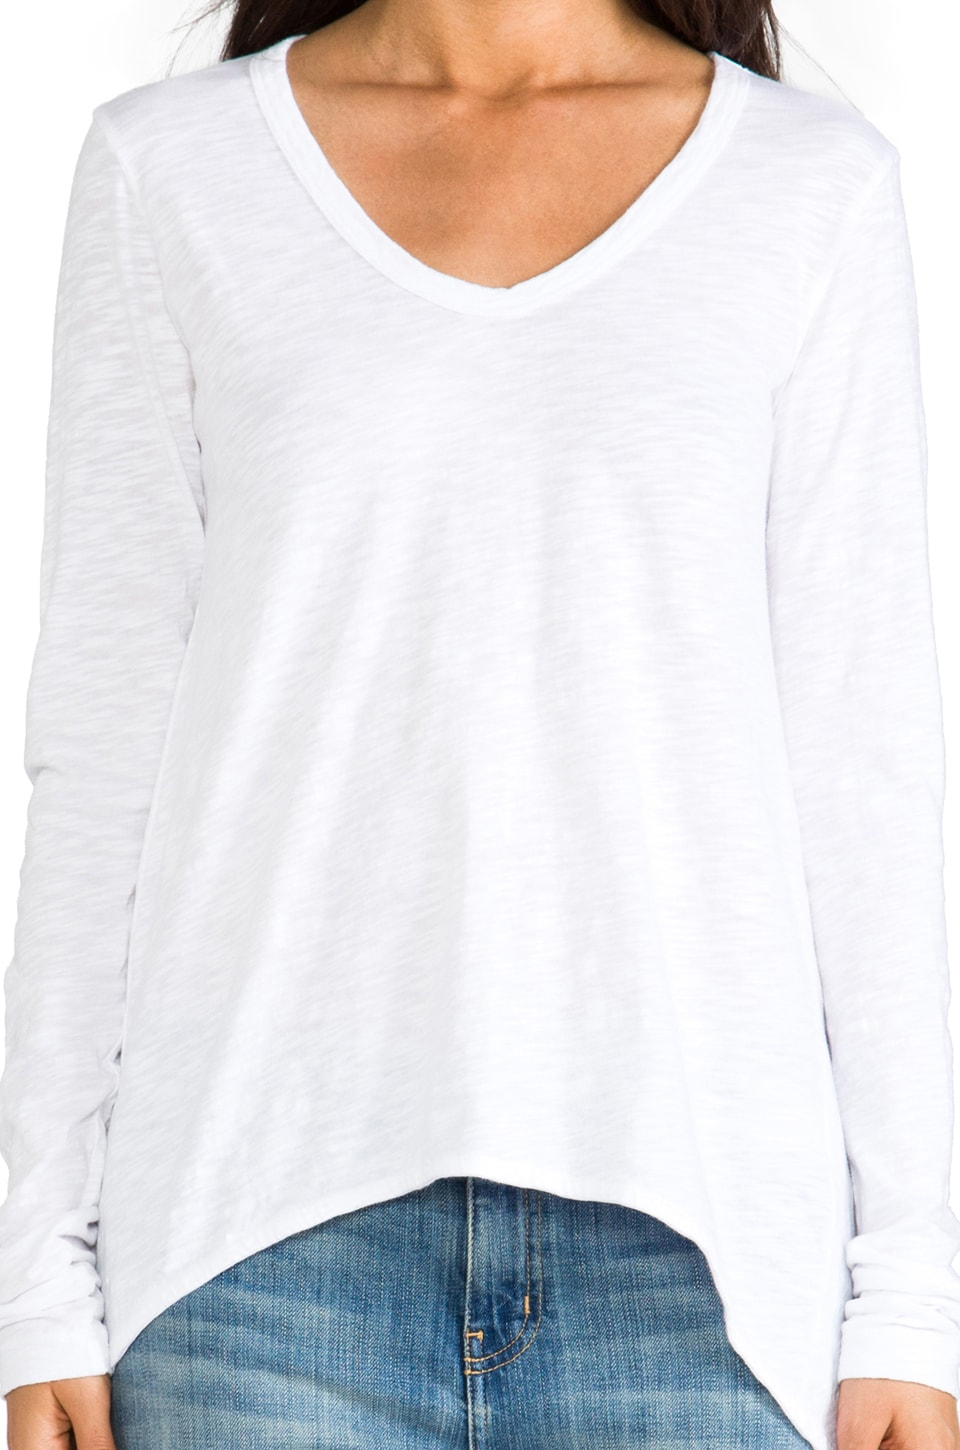 Wilt Slub Shrunken BF Long Sleeve in White